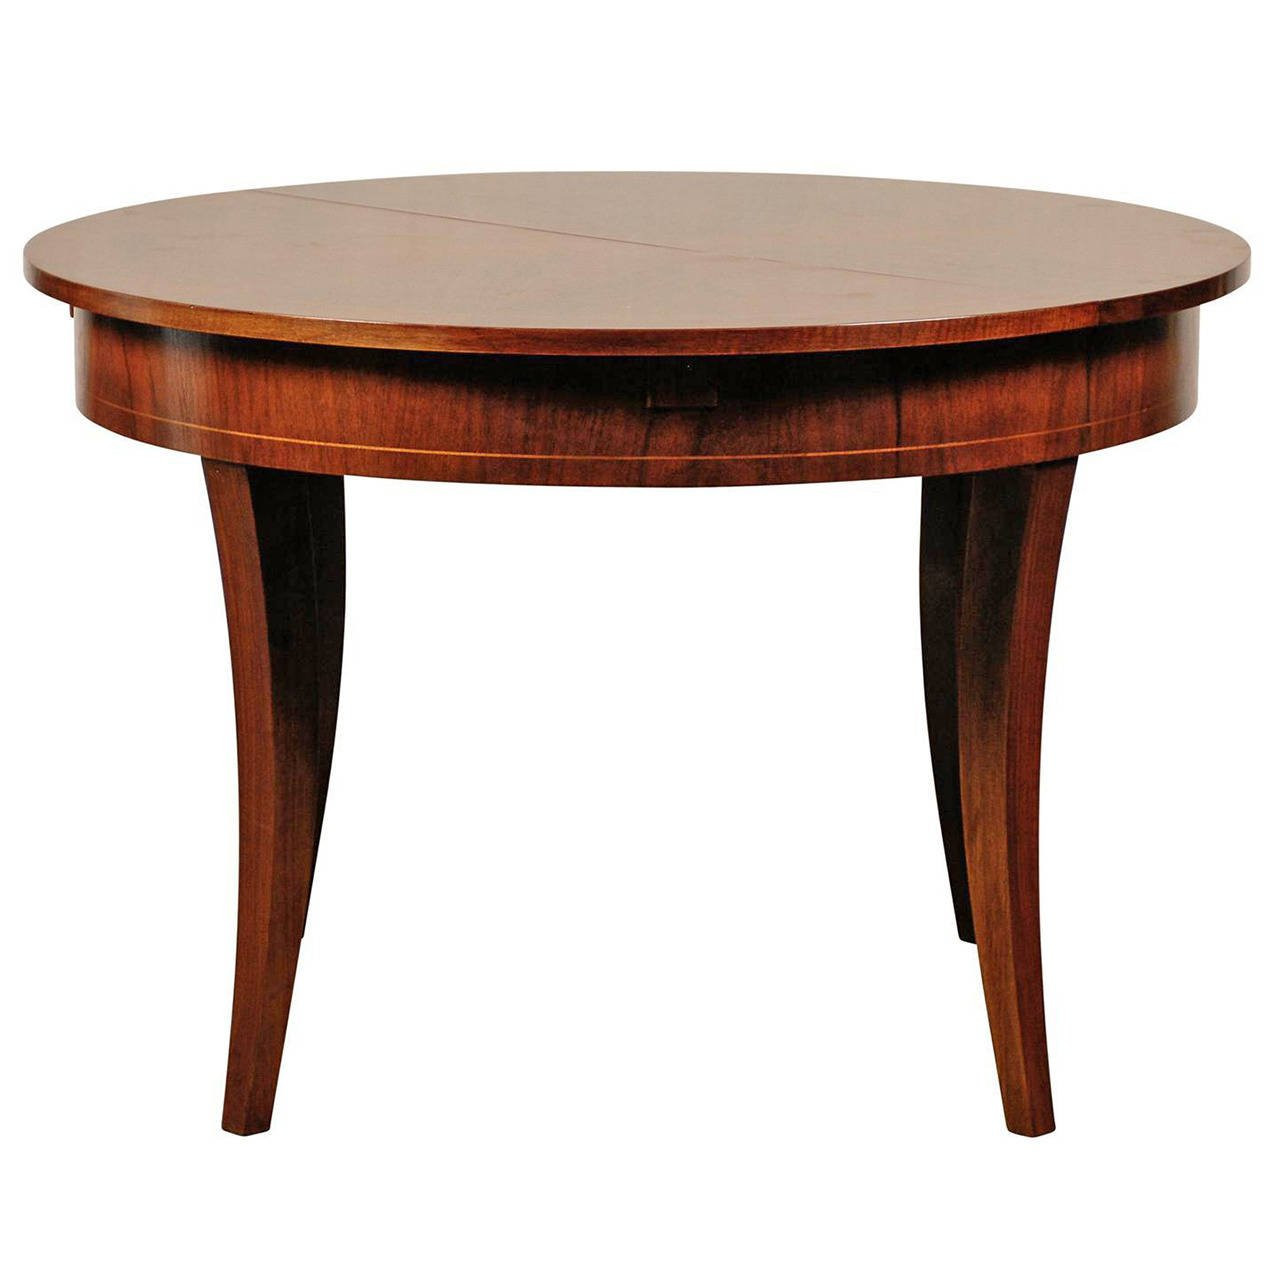 Best ideas about Extension Dining Table . Save or Pin 20th Century Austrian Style Round Walnut Extension Dining Now.